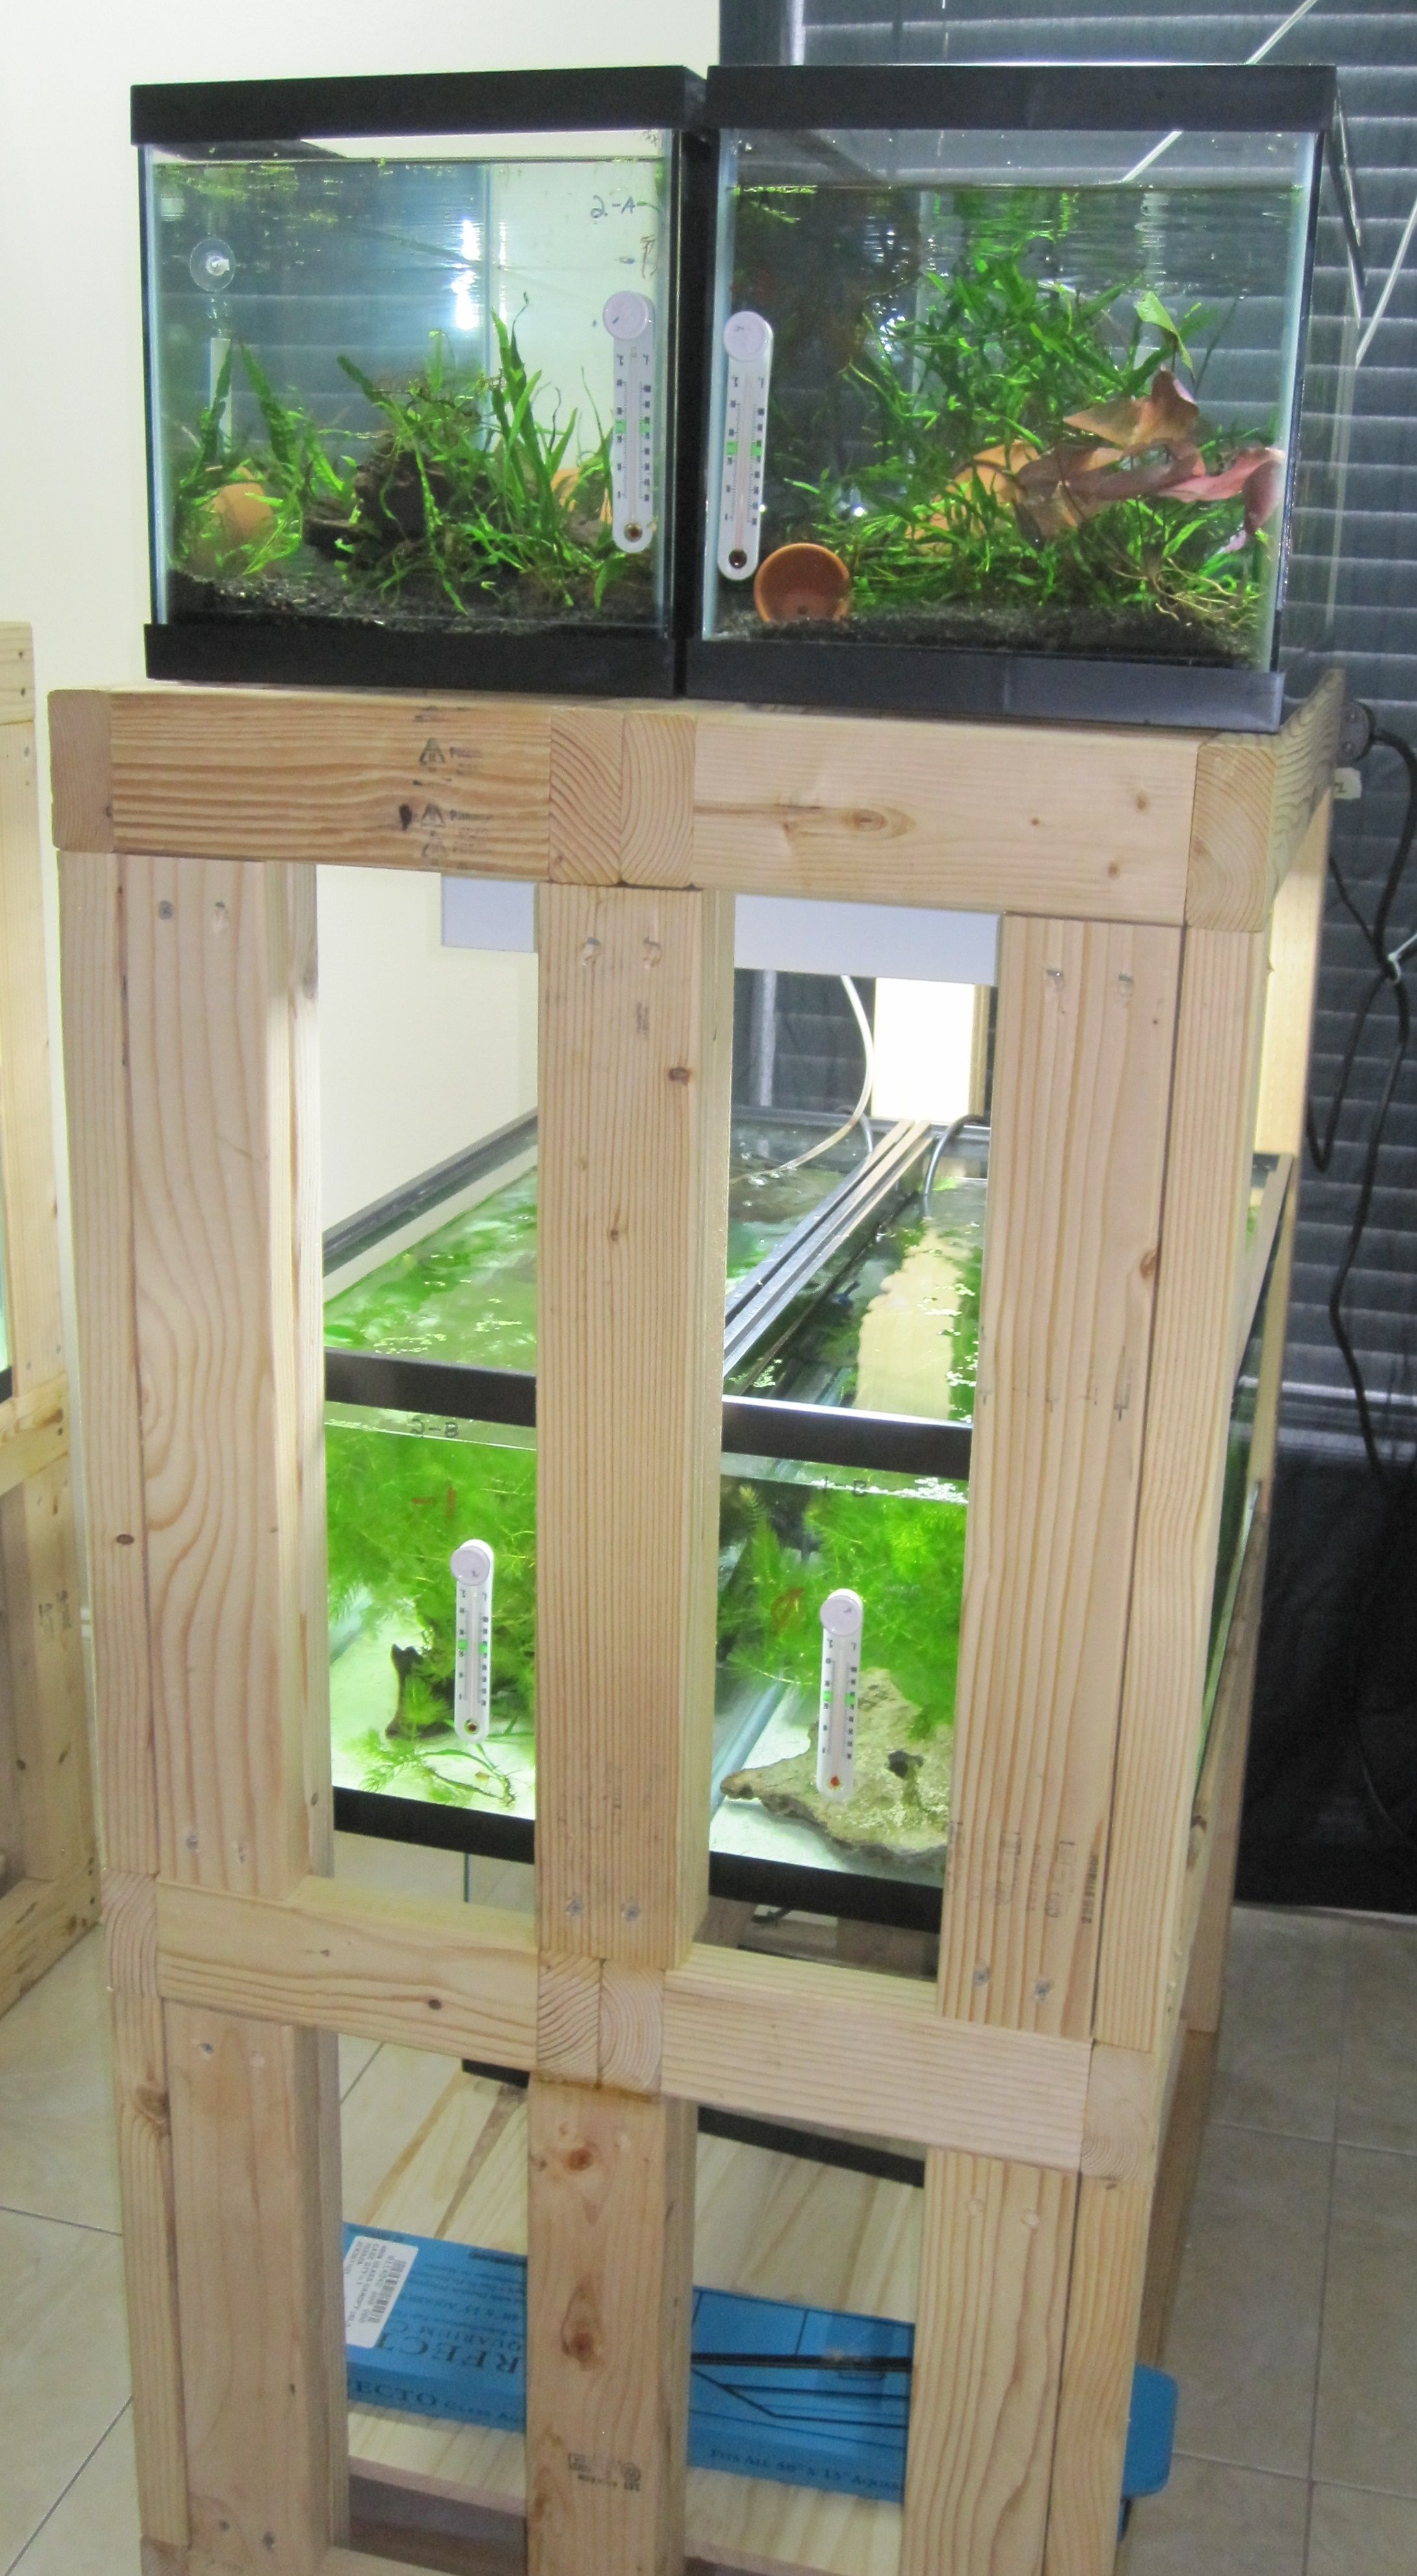 DIY Build an Aquarium Rack will also need to be able to make it